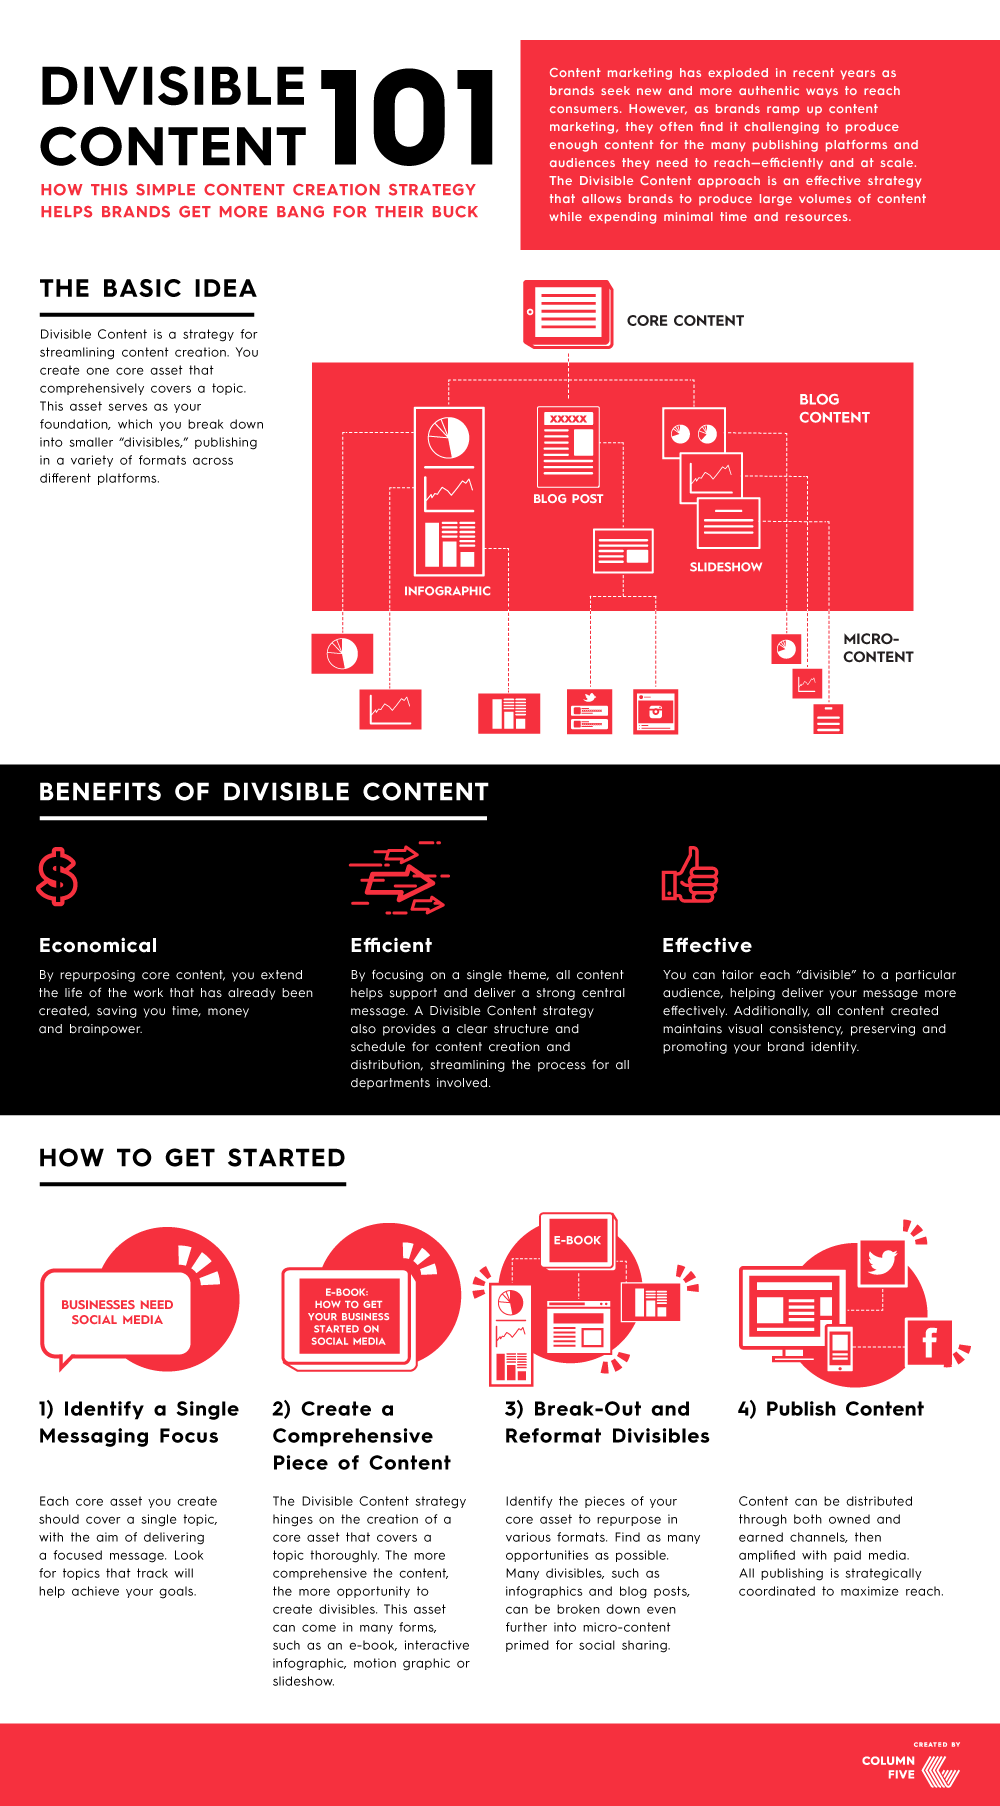 Divisible Content: How This Simple Content Marketing Strategy Helps Brands Get More Bang For Their Buck #infographic